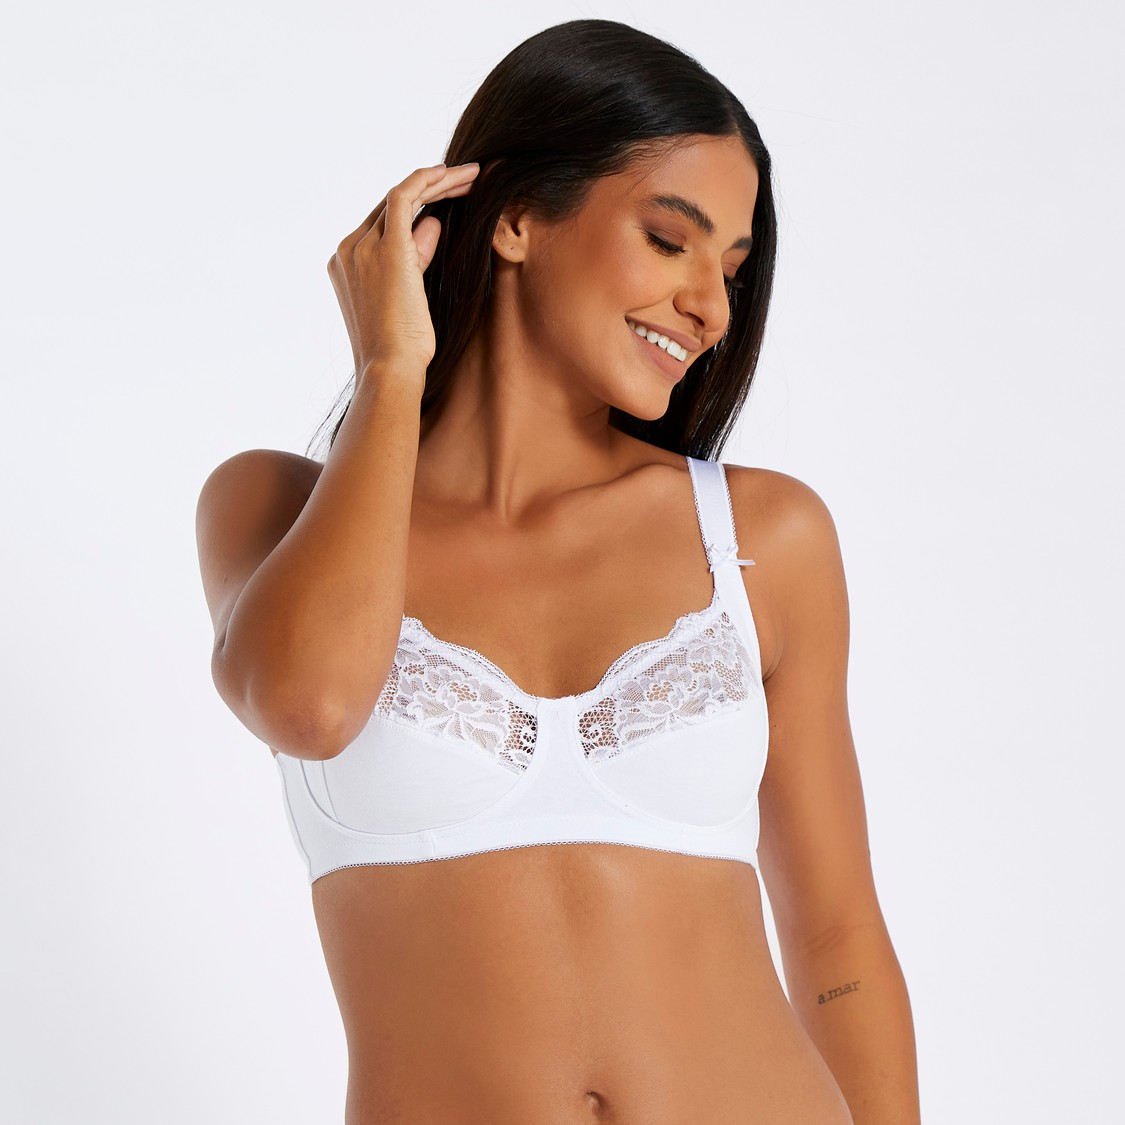 Lace Detail Bra with Adjustable Straps and Hook and Eye Closure